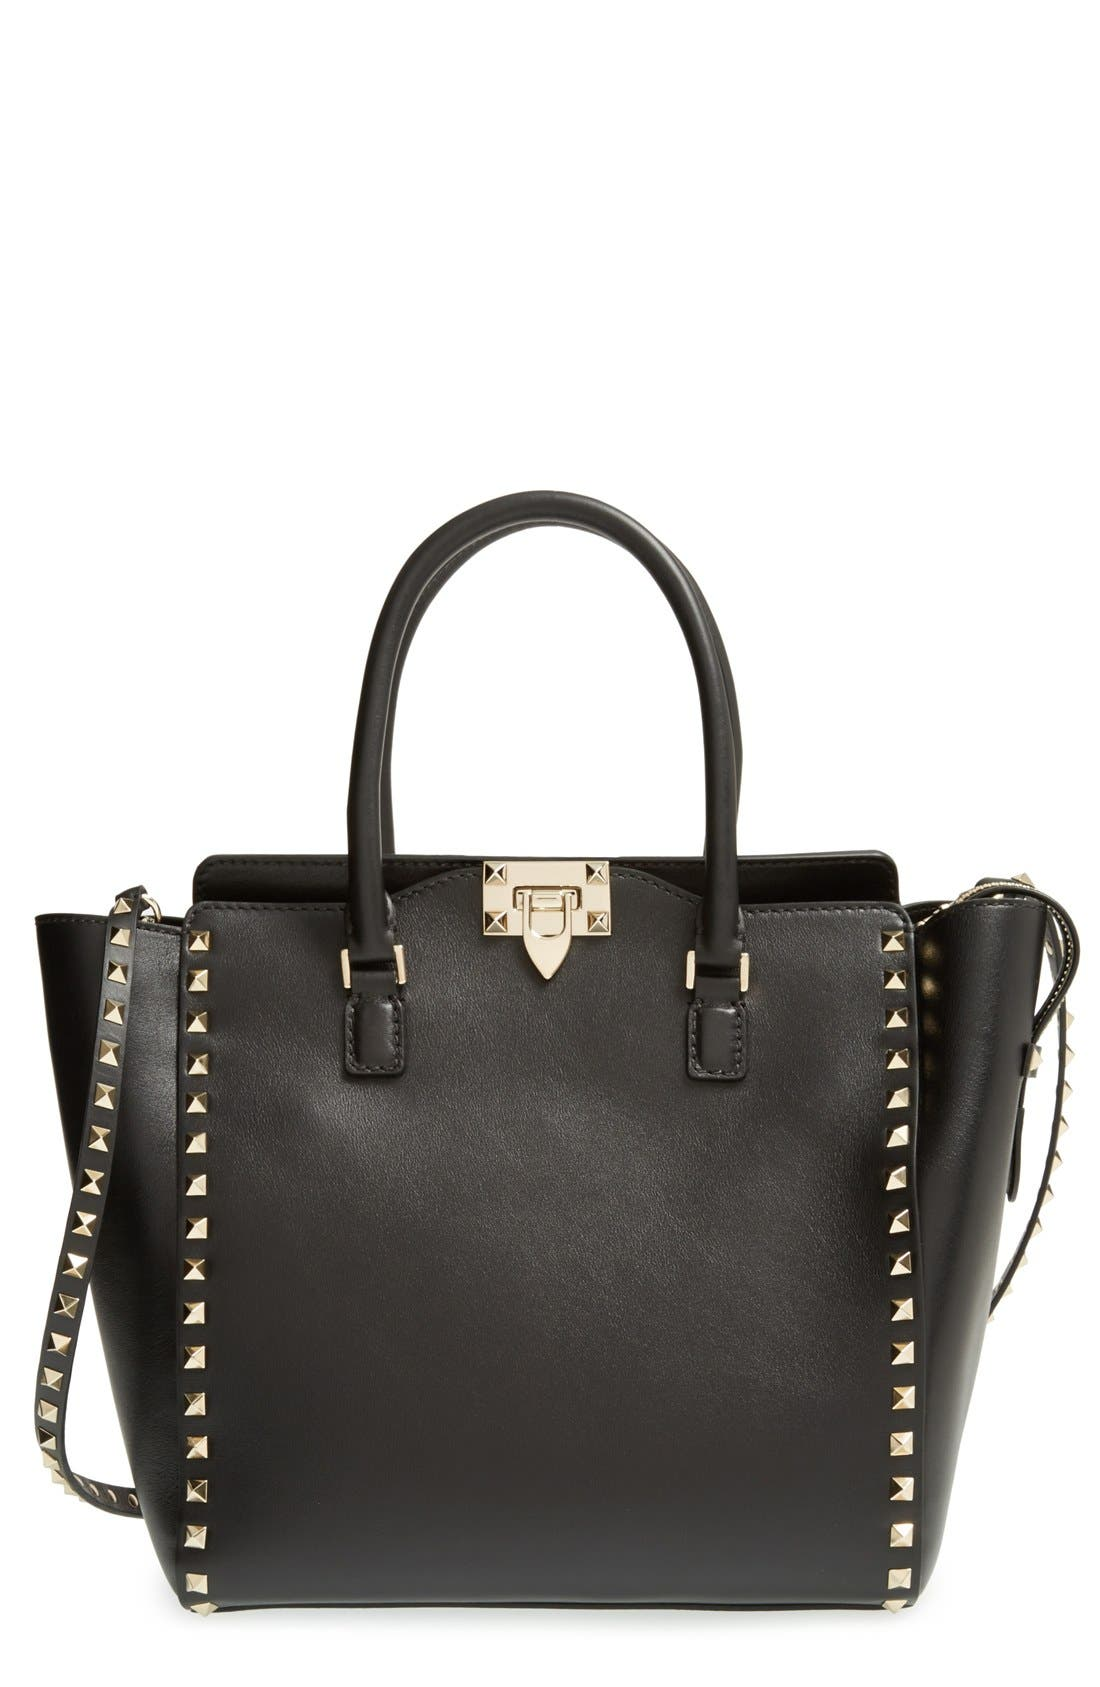 VALENTINO GARAVANI Rockstud Leather Double Handle Tote